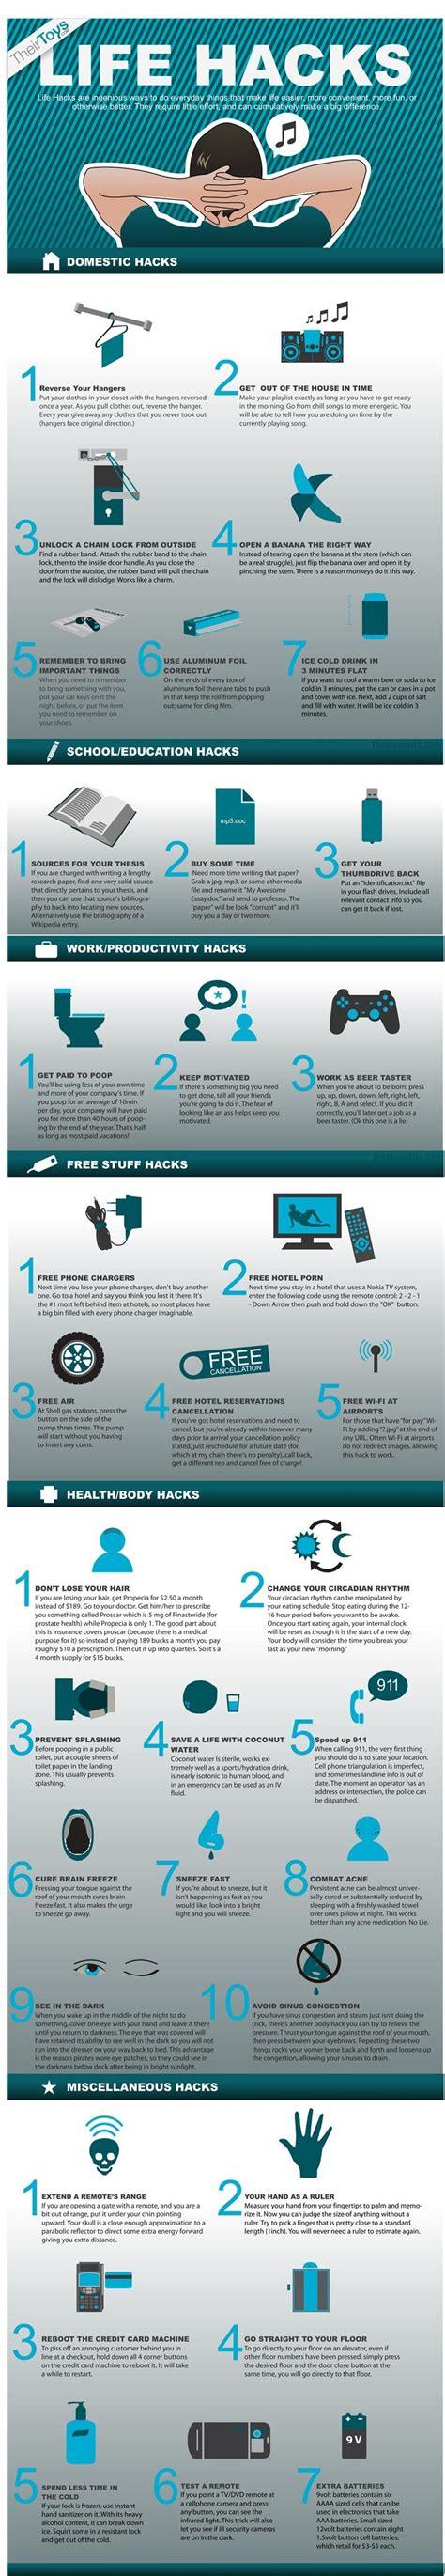 Hacks by Life Hacks Random Cool Information Daily Enter Your